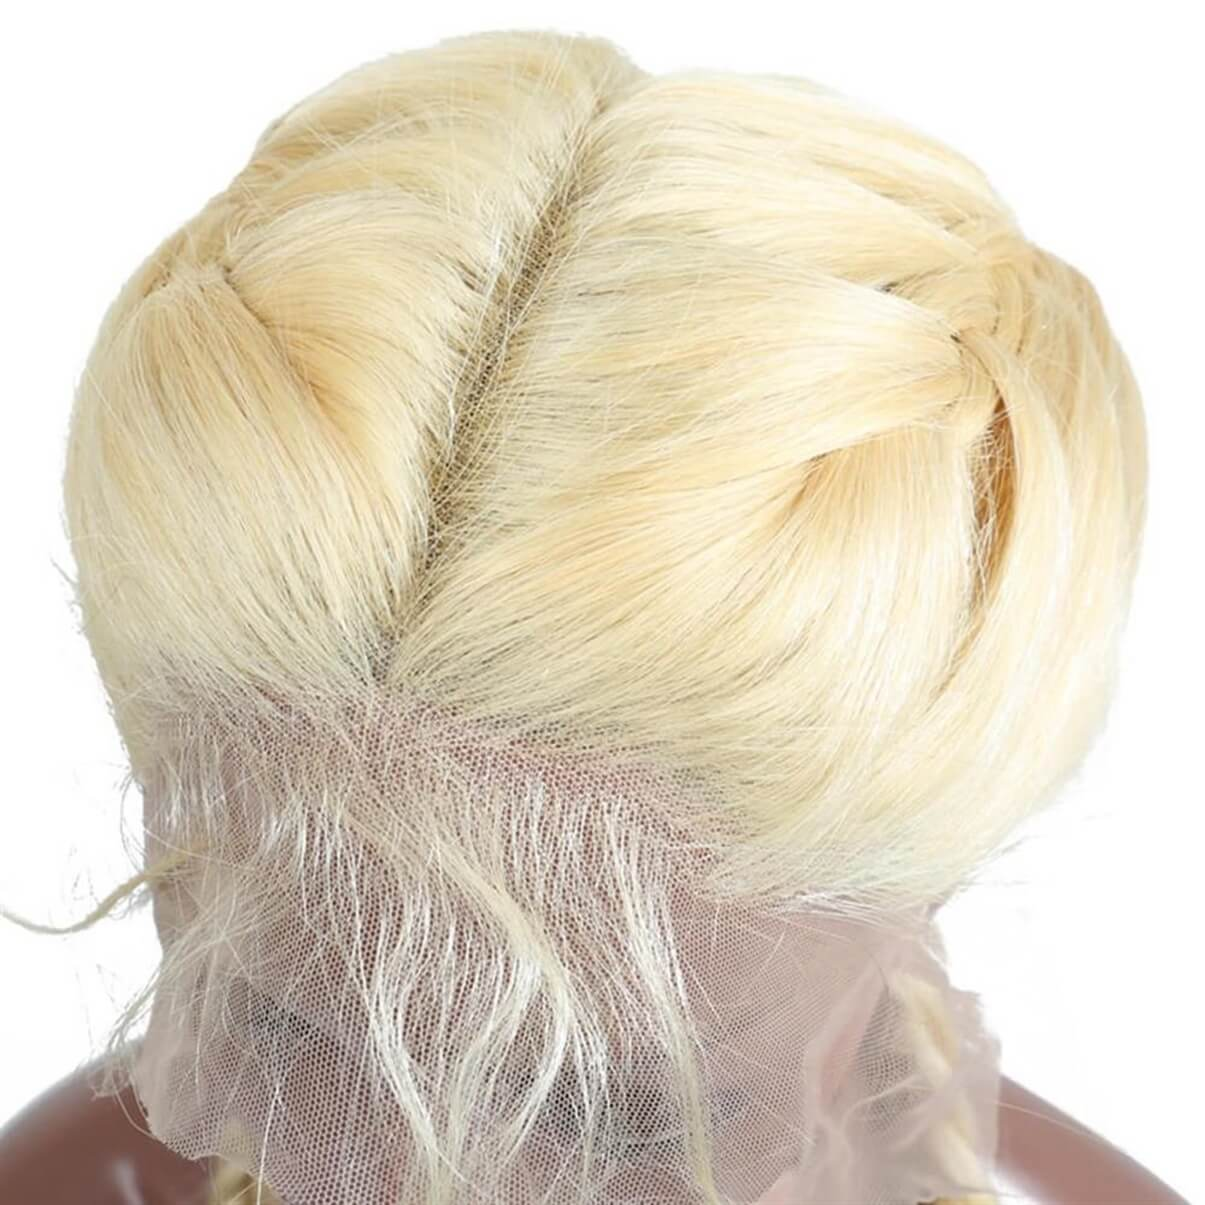 Lakihair 613 Blonde Full Lace Wigs Brazilian Virgin Human Straight Hair Wigs With Baby Hair